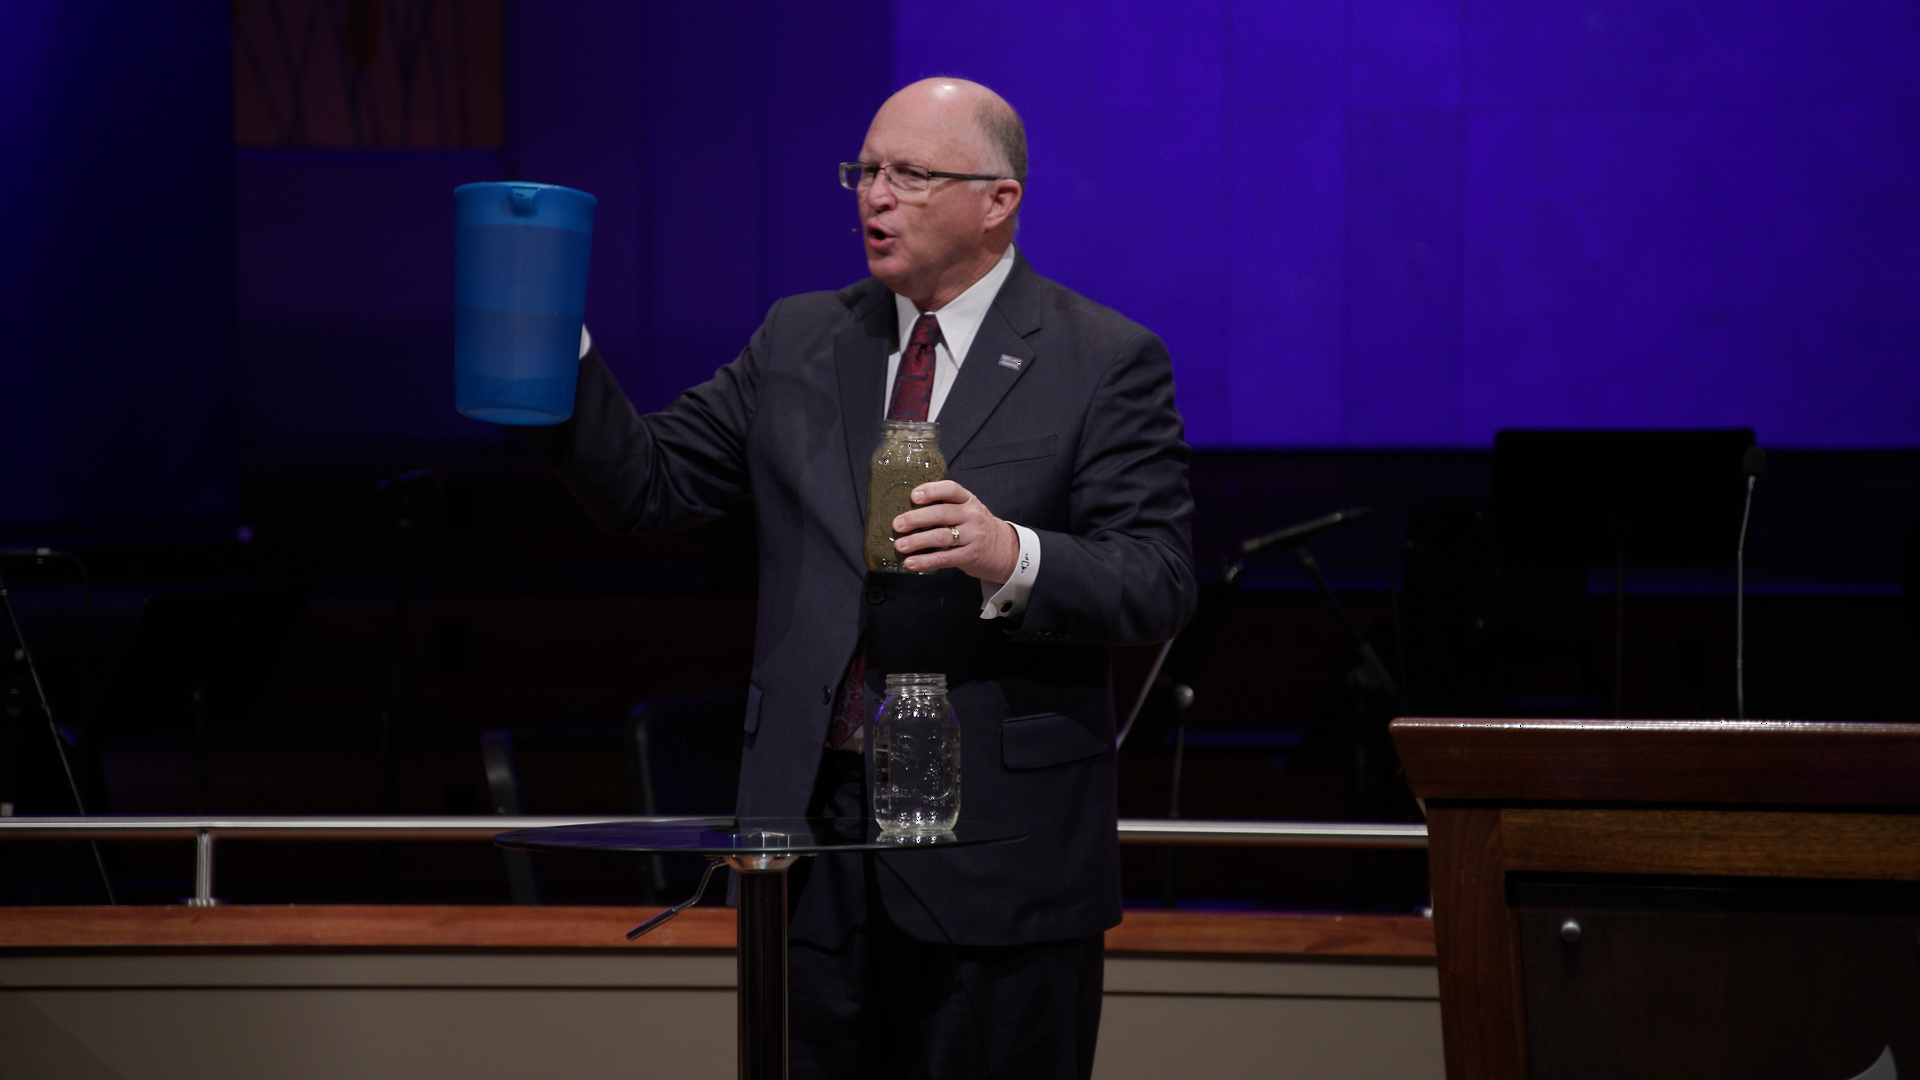 Pastor Paul Chappell: The Spirit of the Gospel